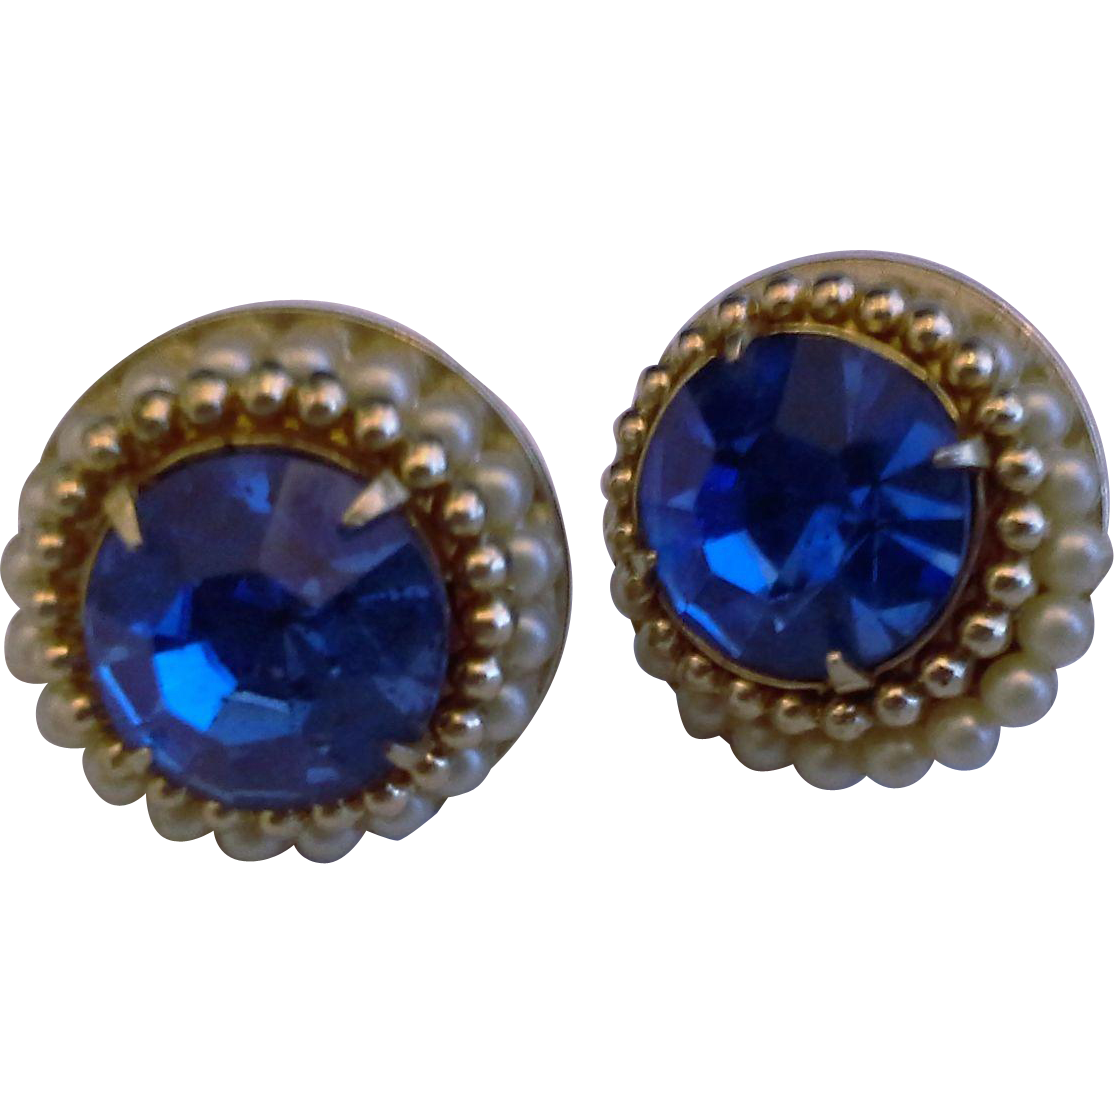 Coro Royal Blue Large Rhinestone Screwback Earrings Faux Pearls